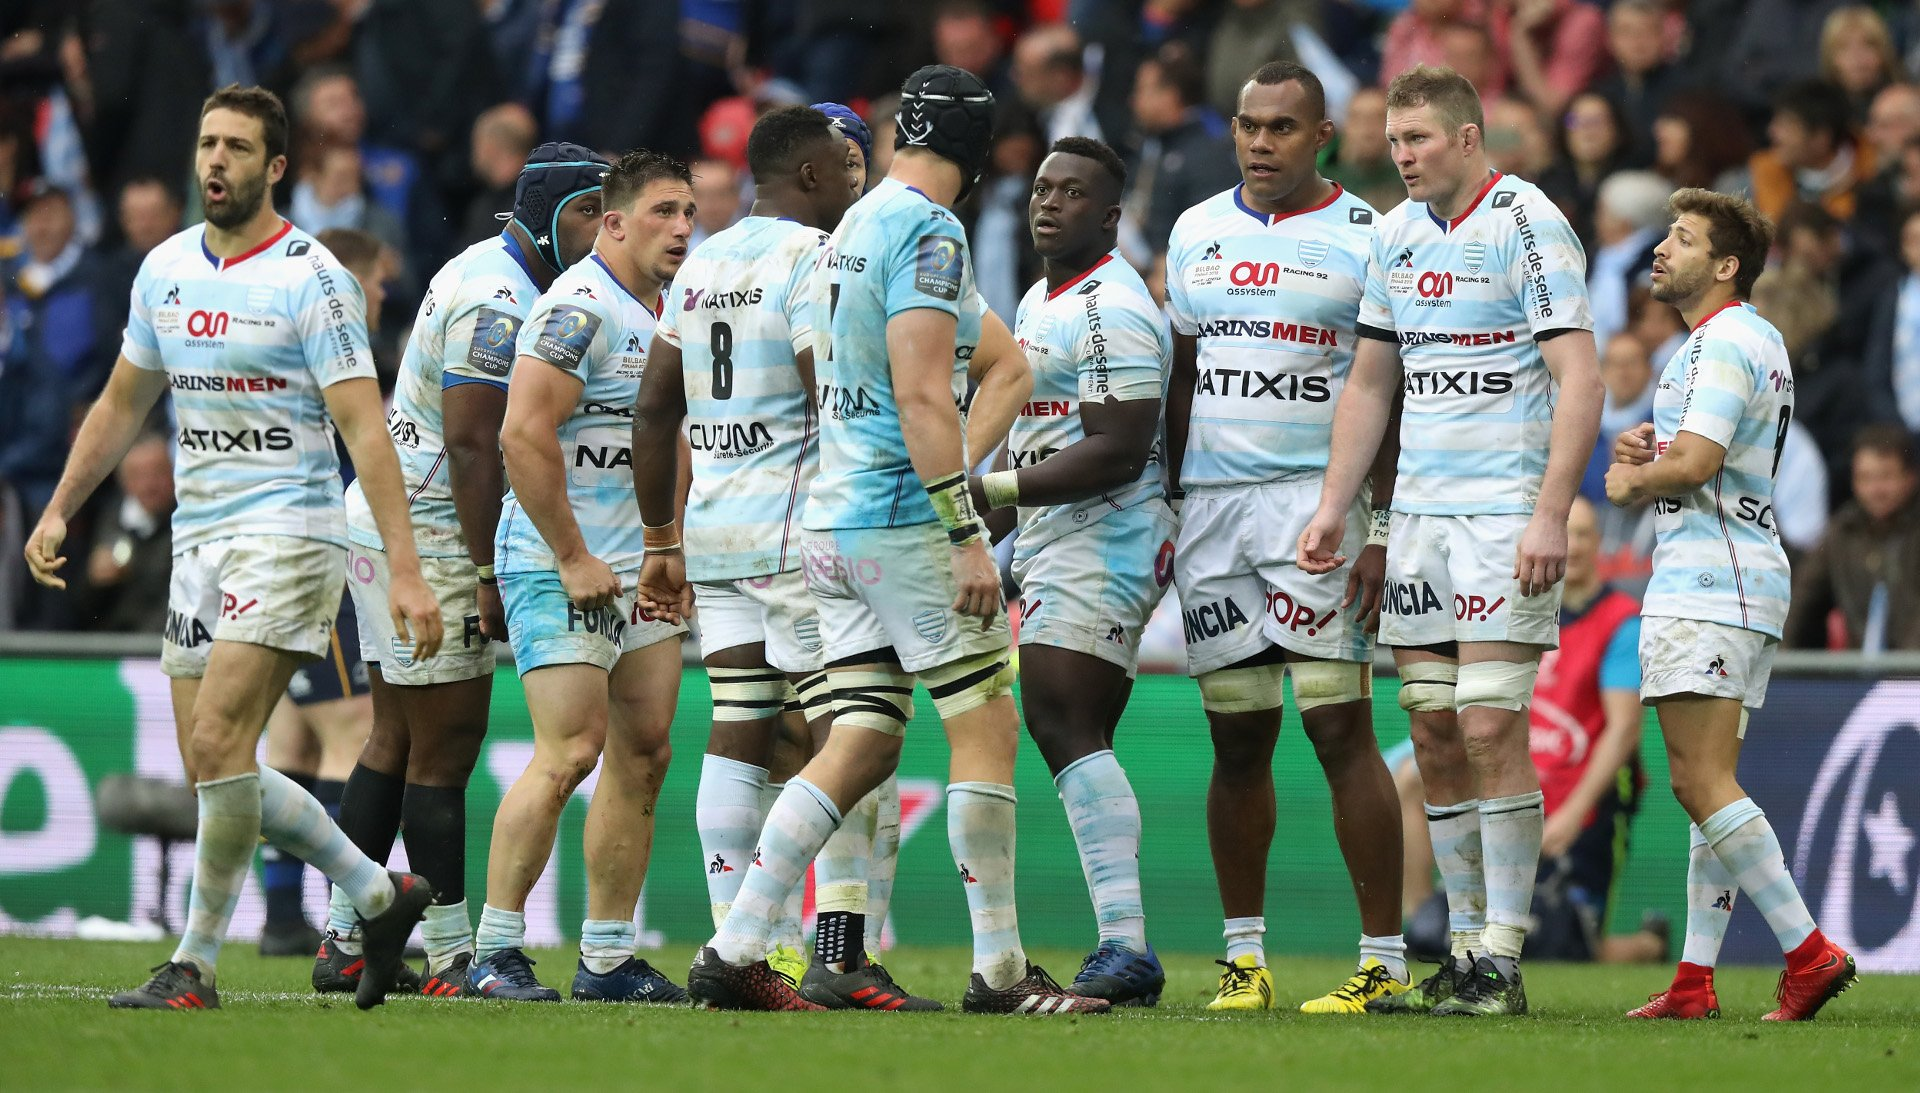 Racing may have Nyanga's replacement in 6'2, 110kg backrow signed from rugby nursery